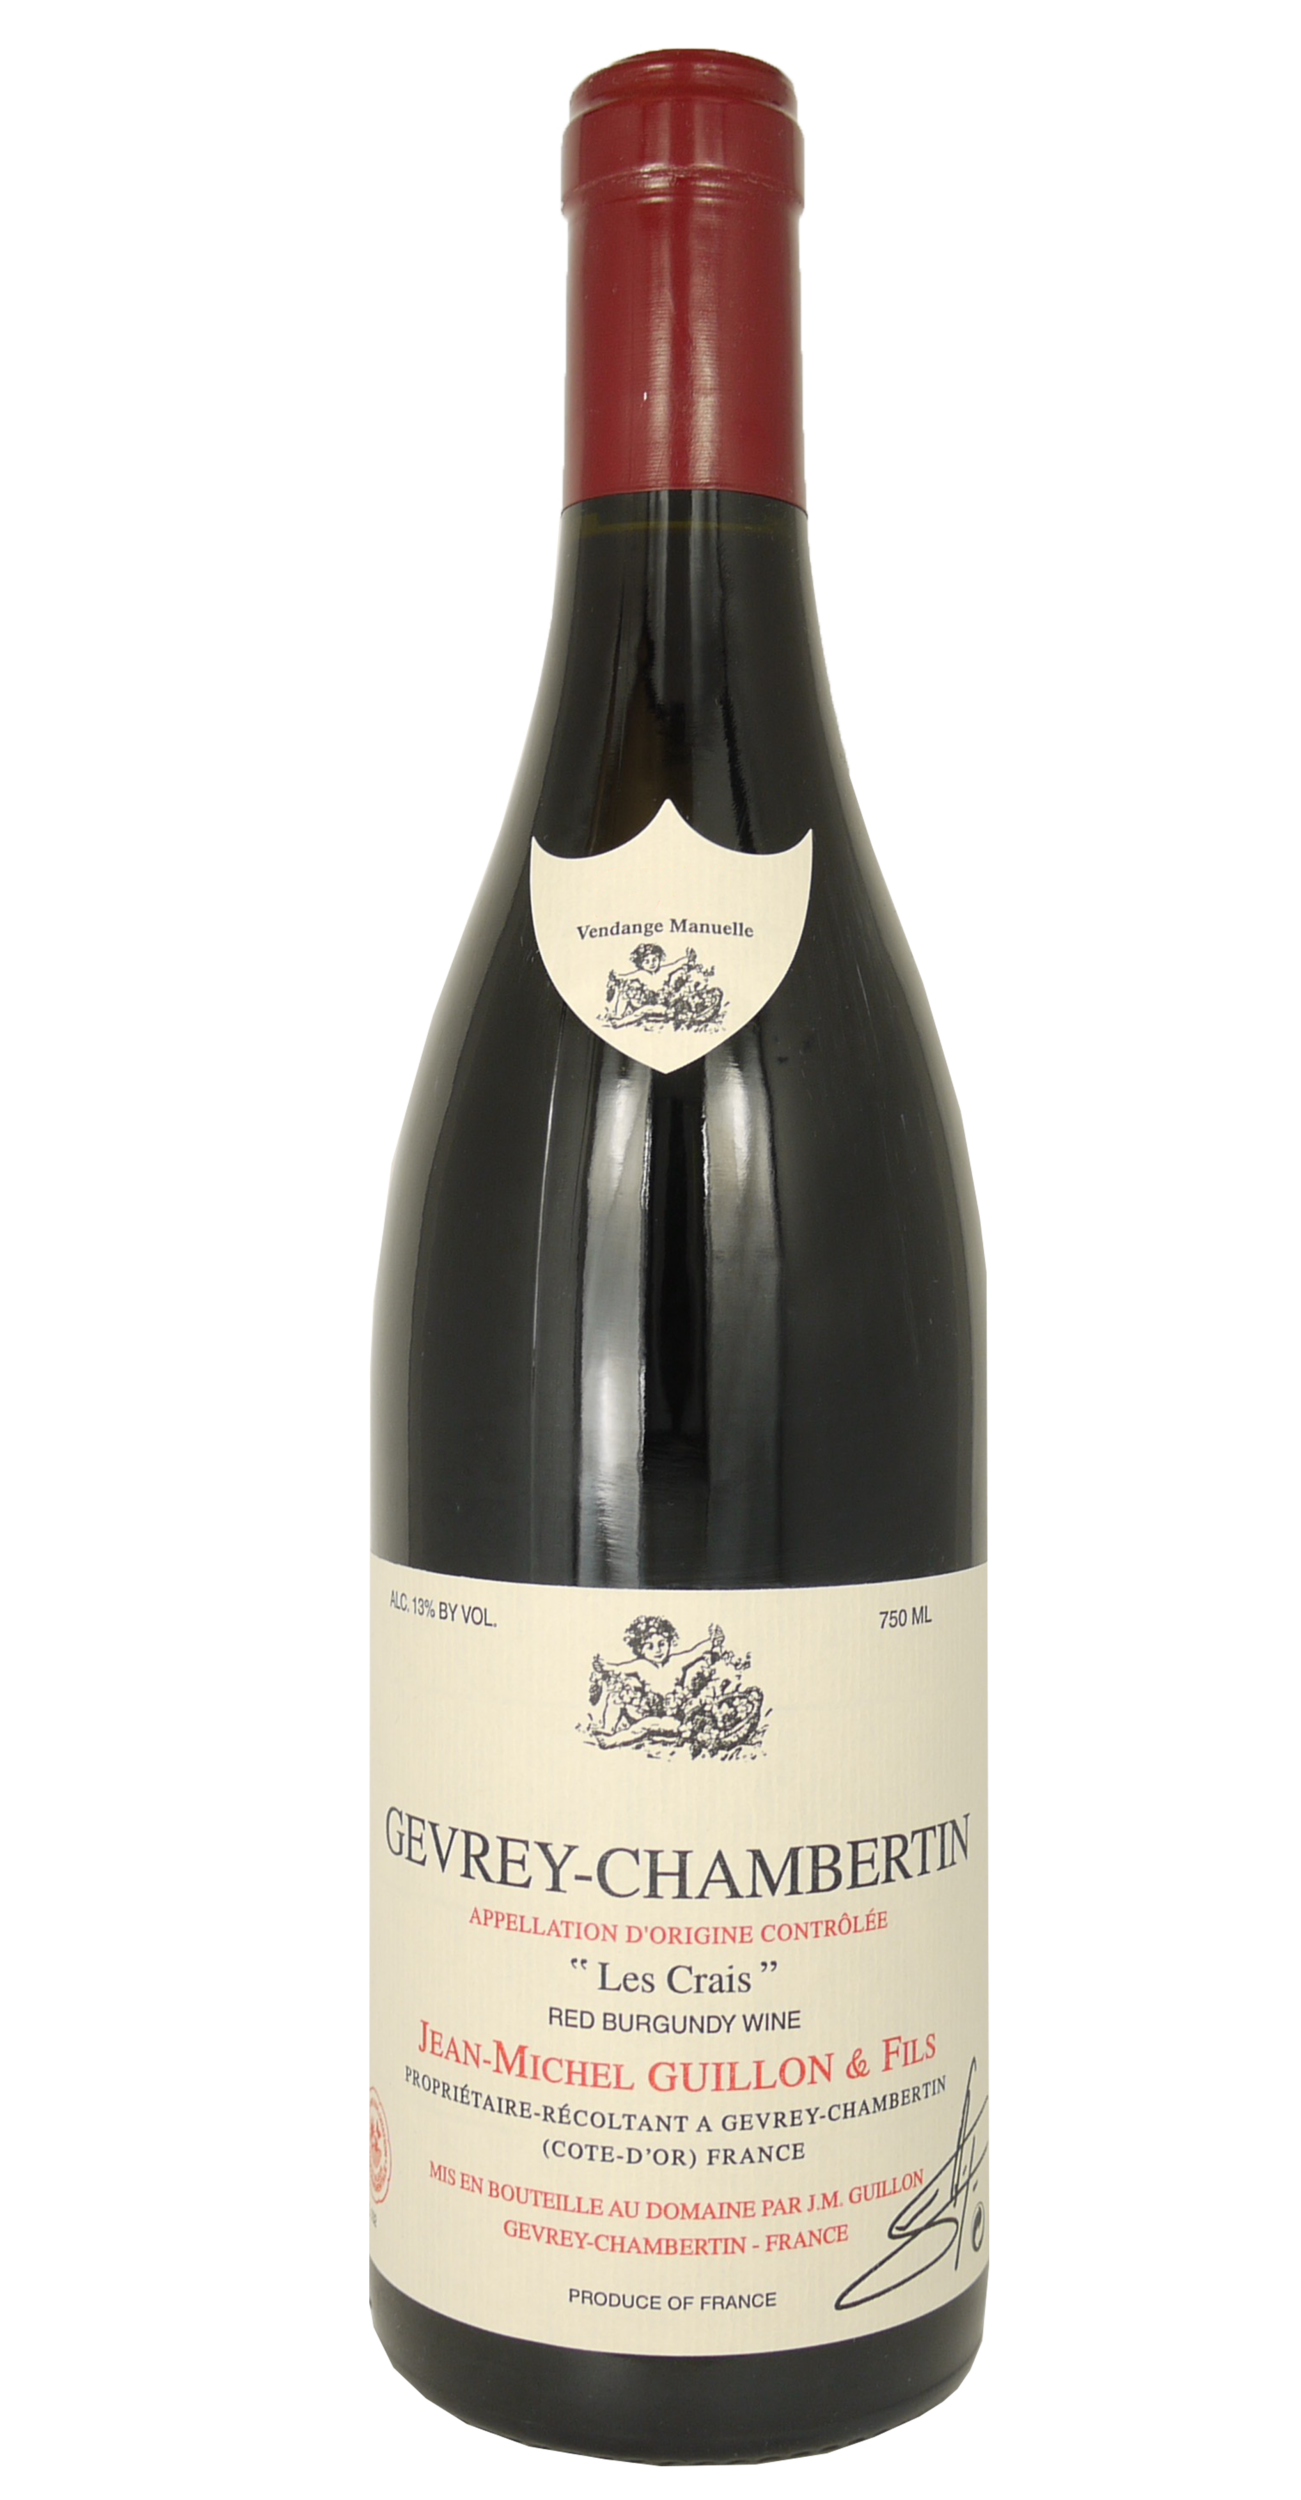 gevrey chambertin les crais 2015 jean michel guillon et fils. Black Bedroom Furniture Sets. Home Design Ideas